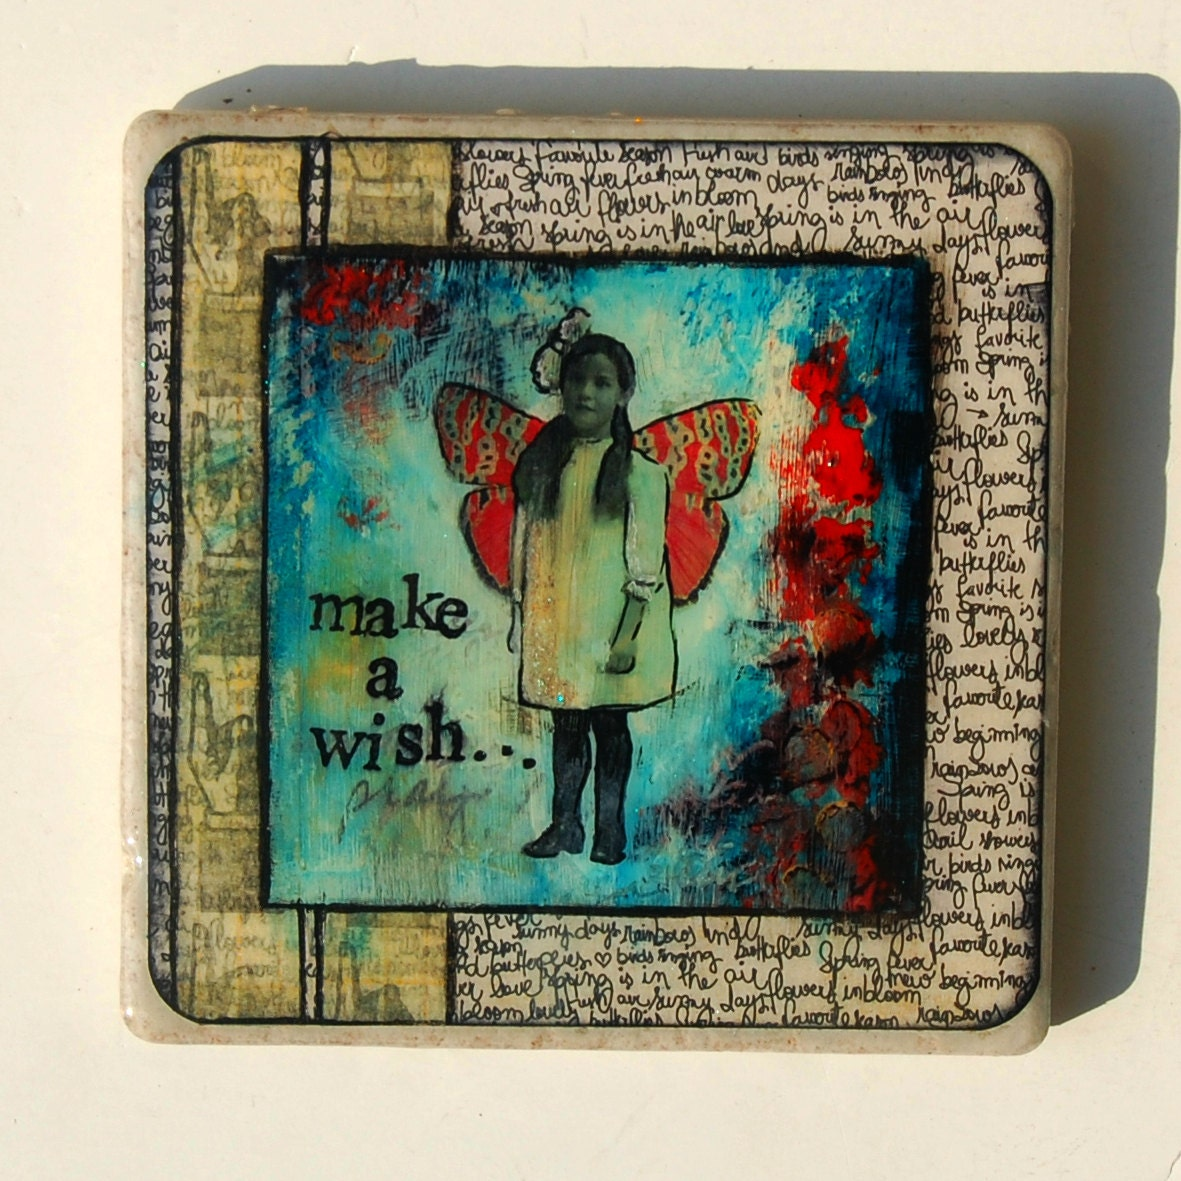 "Make a Wish - 6x6"" Tile Artwork"